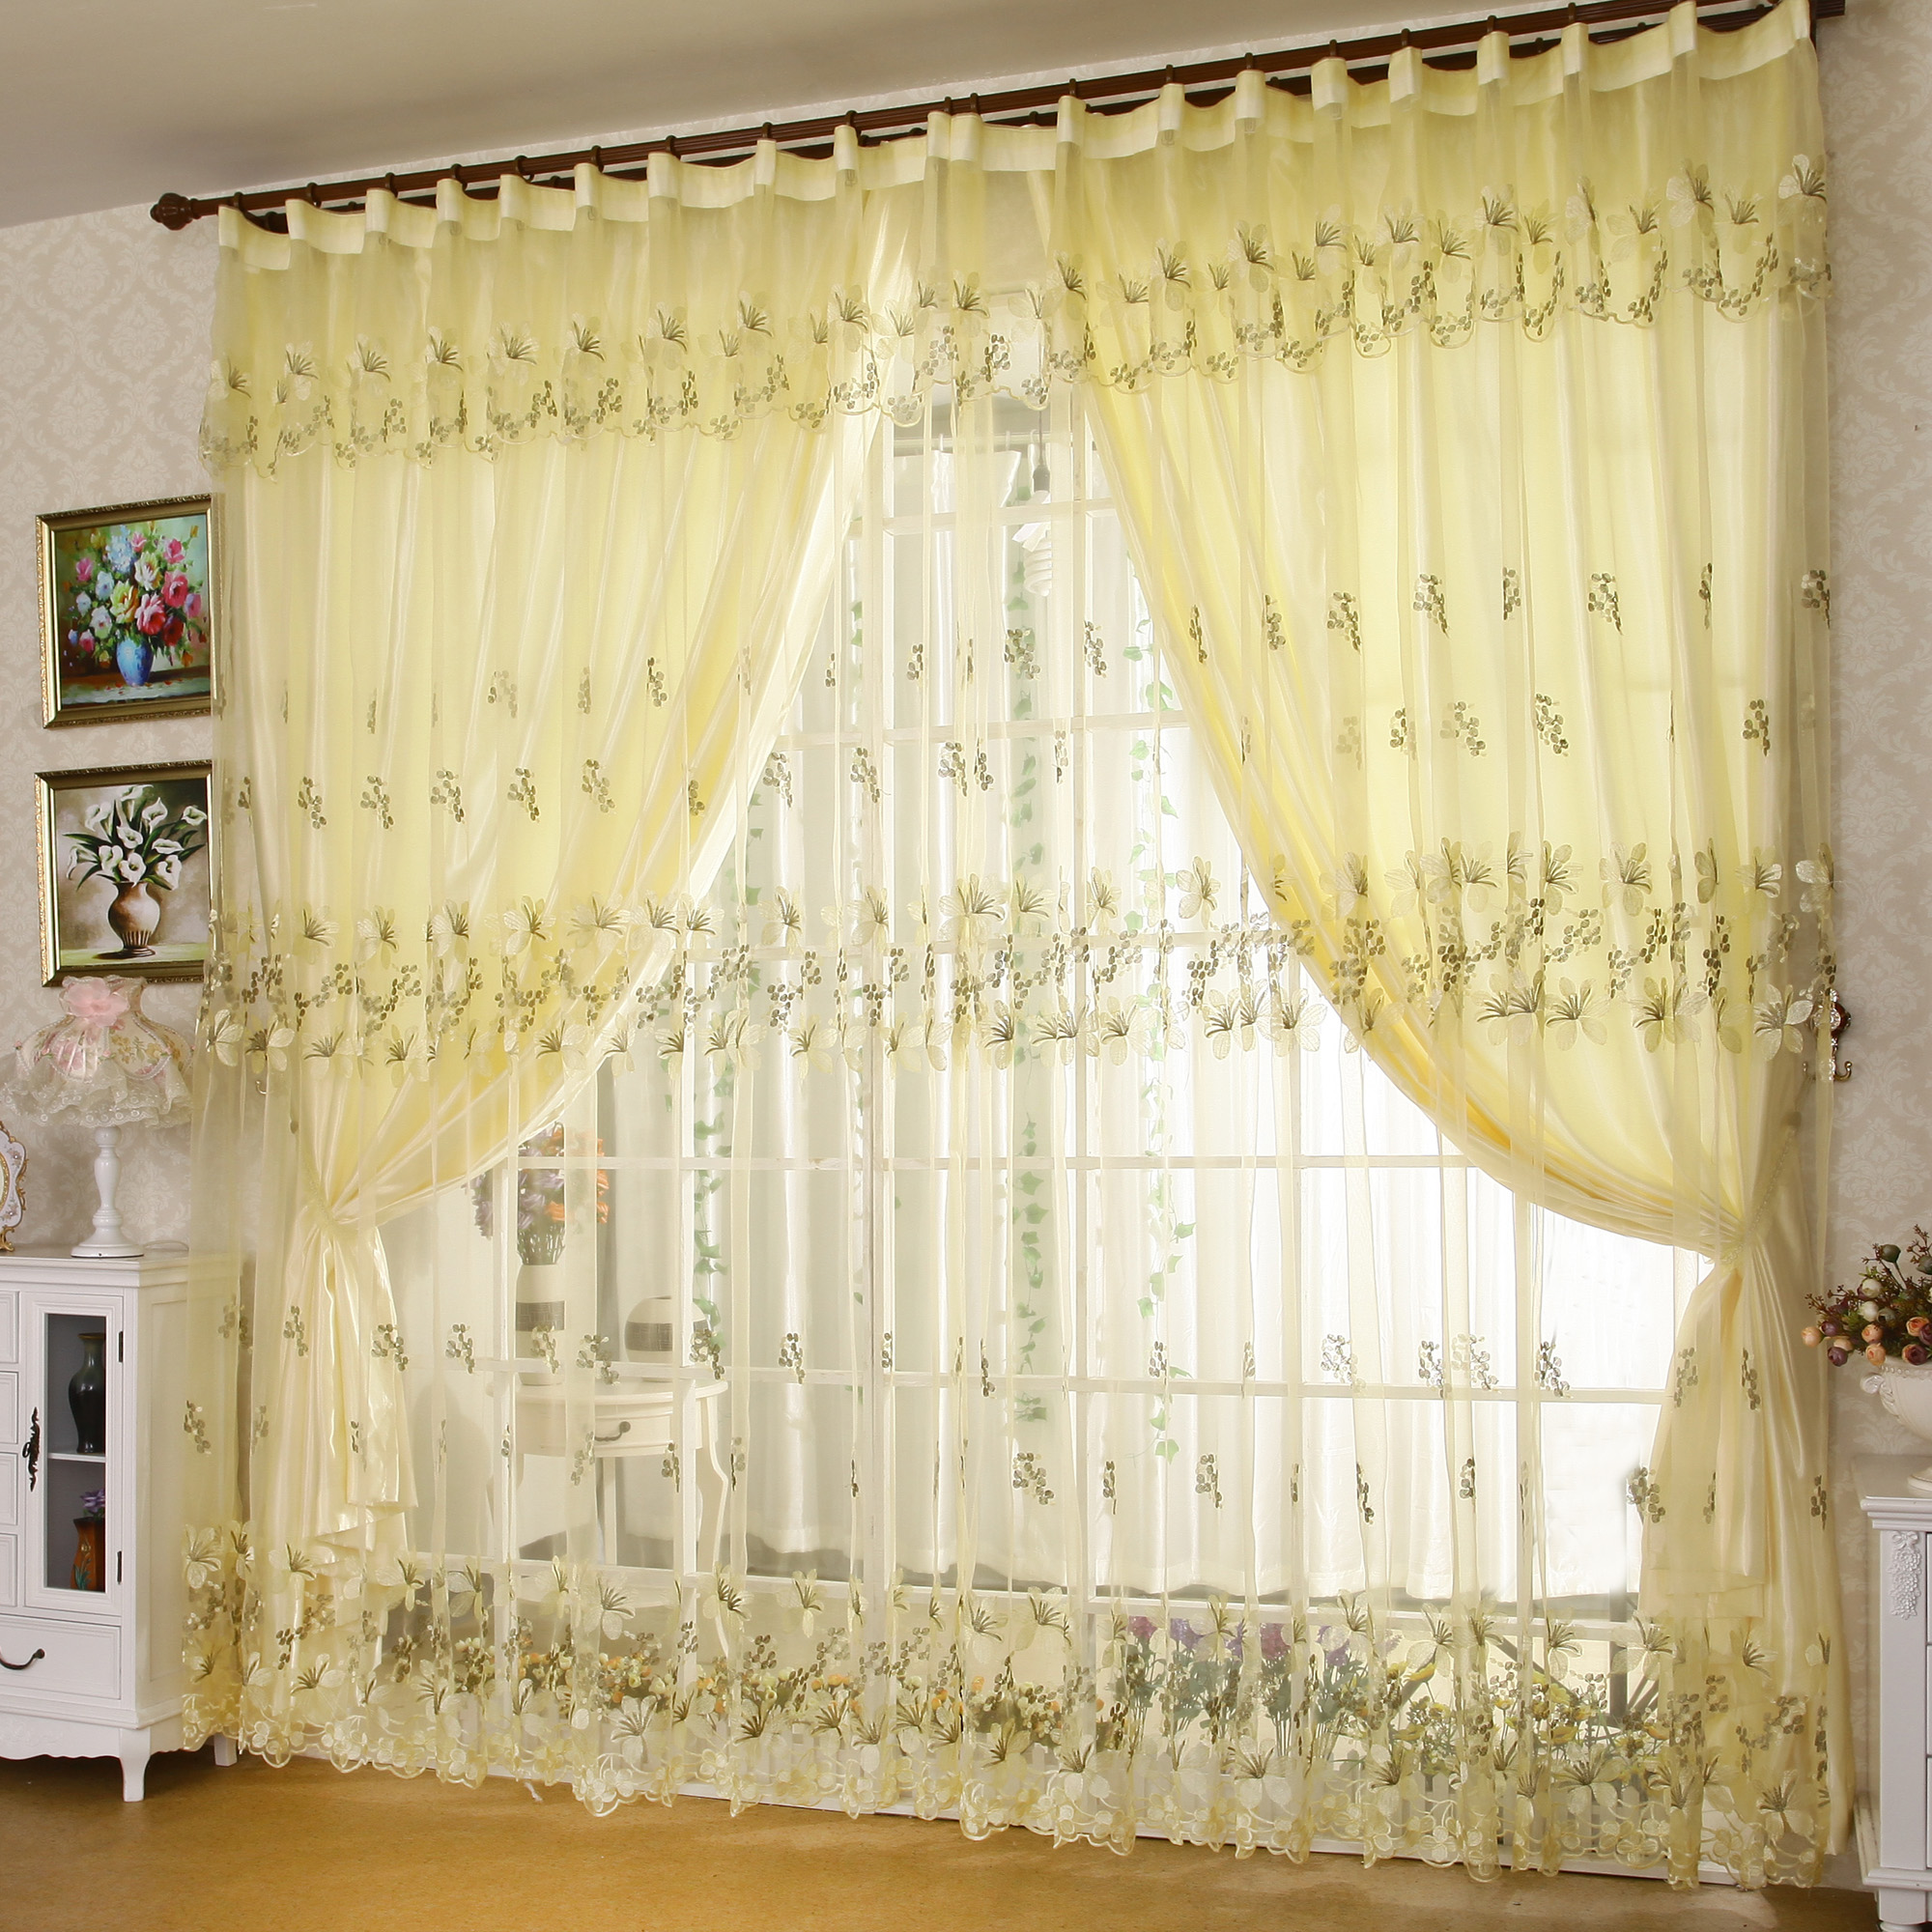 ... curtains for window living room bedroom curtain fabric pink yellow